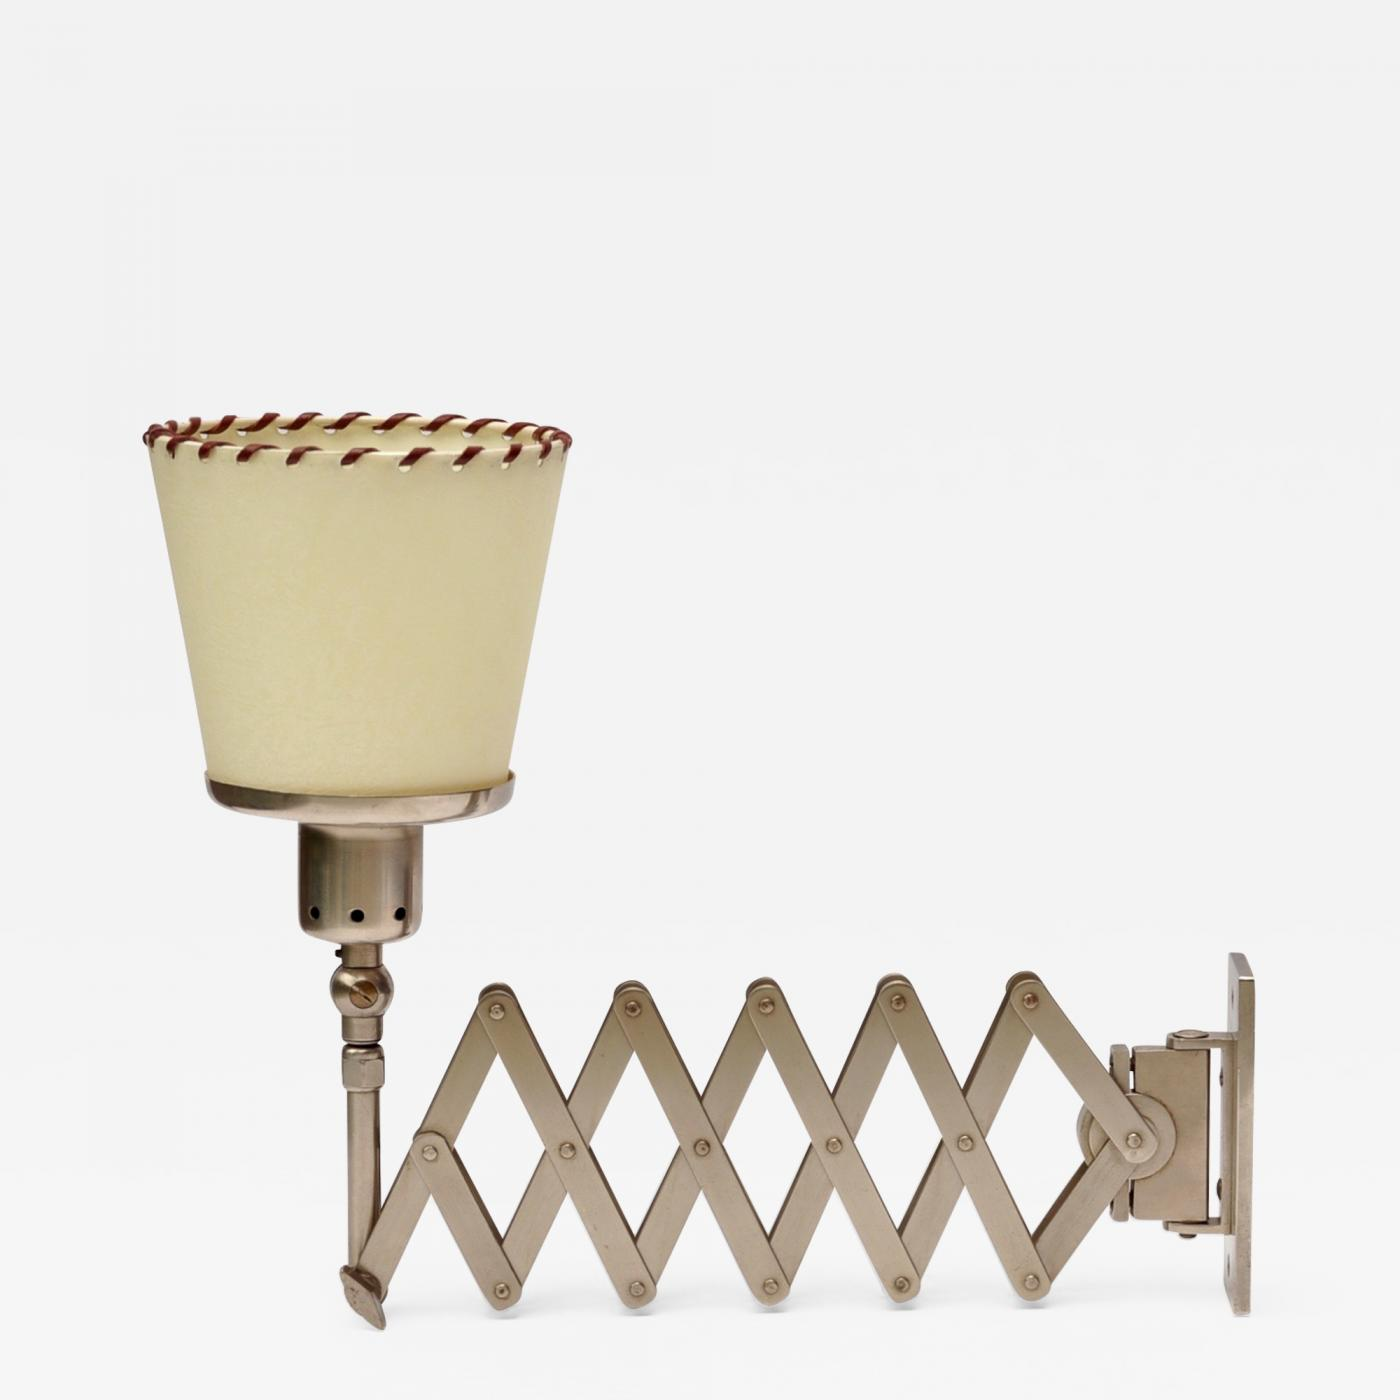 Accordion Wall Lamp Alfred Muller, Basel Switerland 1940s Image